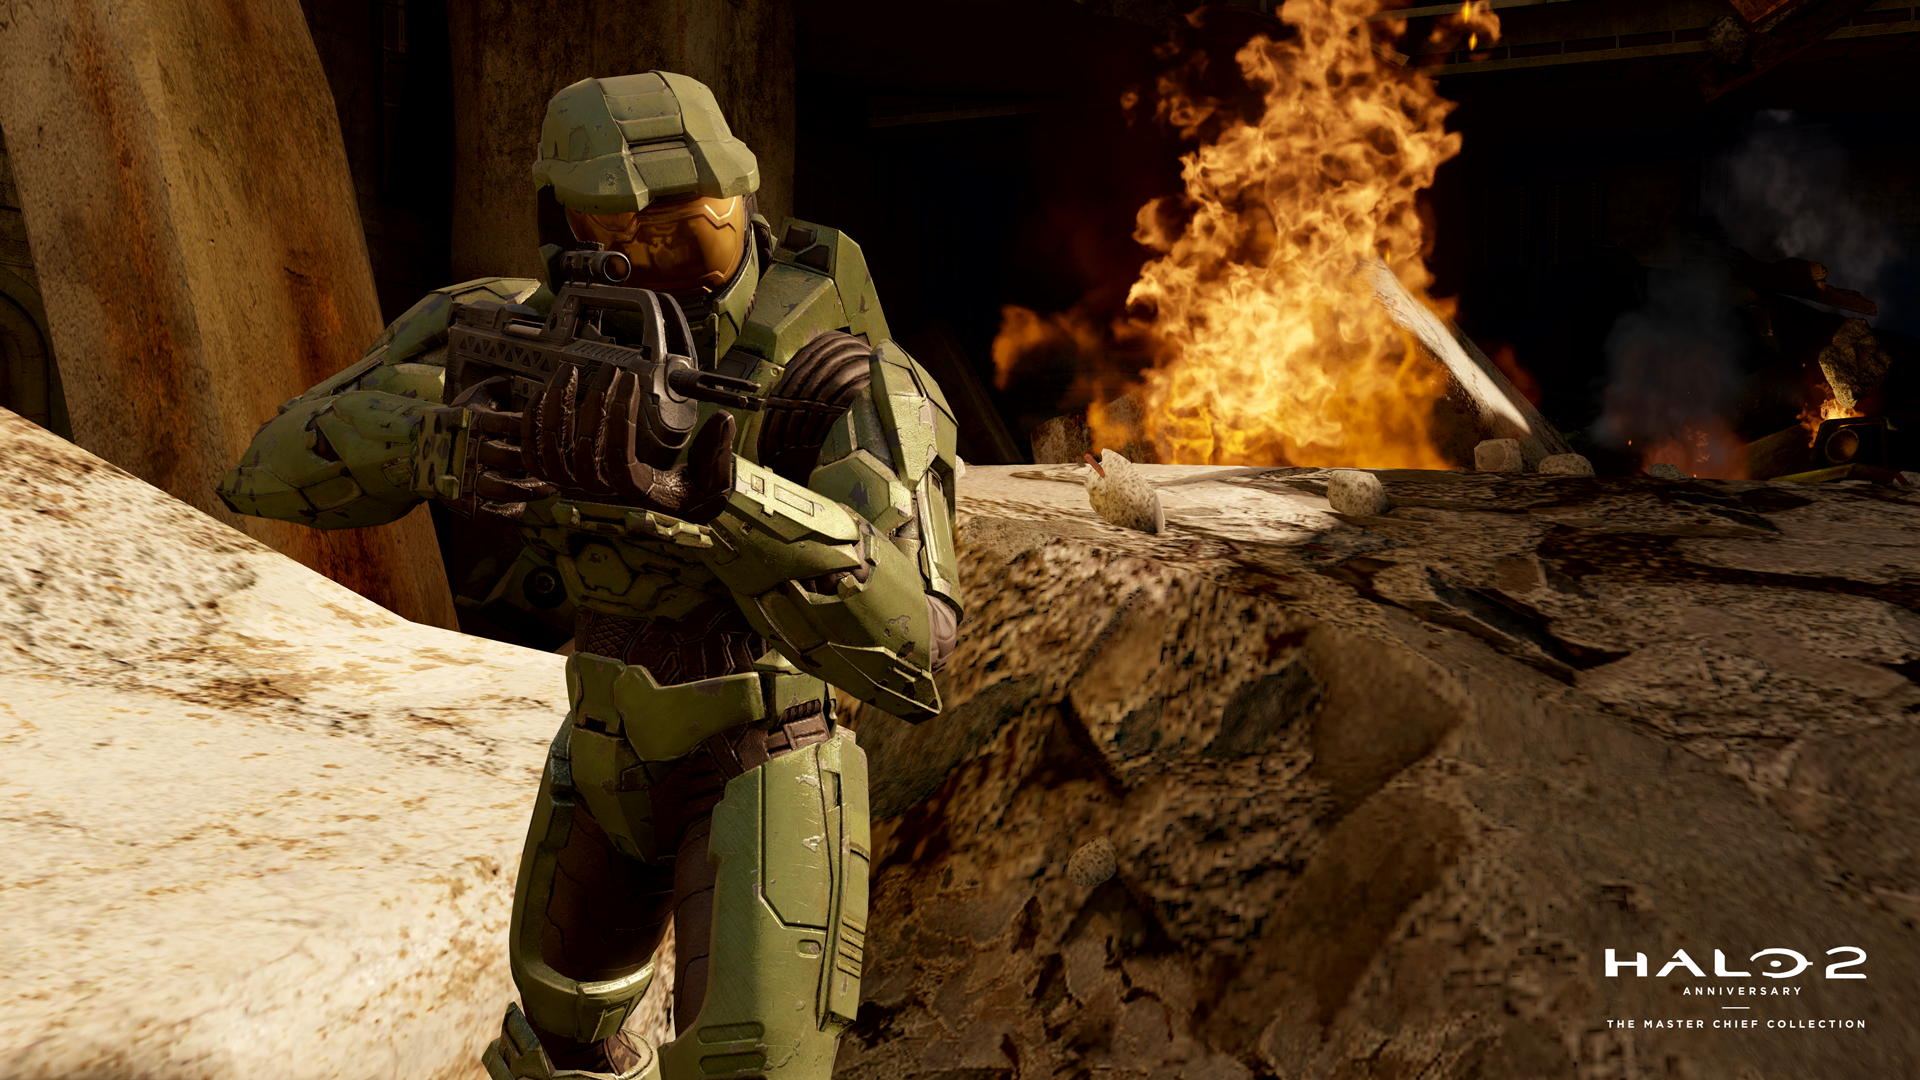 Halo-Master-Chief-Collection-2020_Halo2Anniversary_Campaign_11_Watermarked_1920x1080